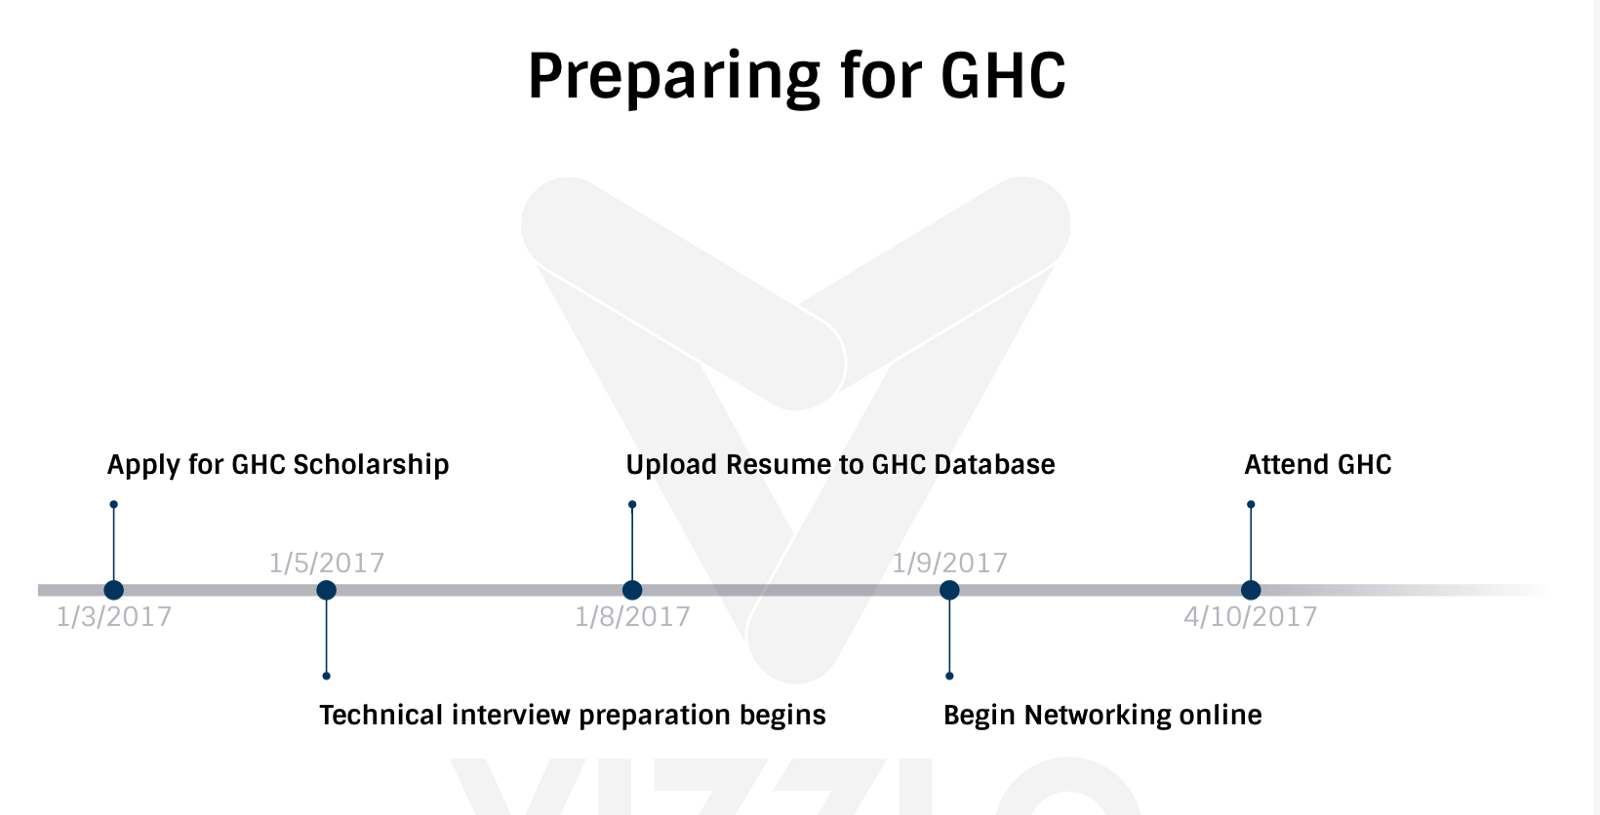 timeline to prepare for ghc